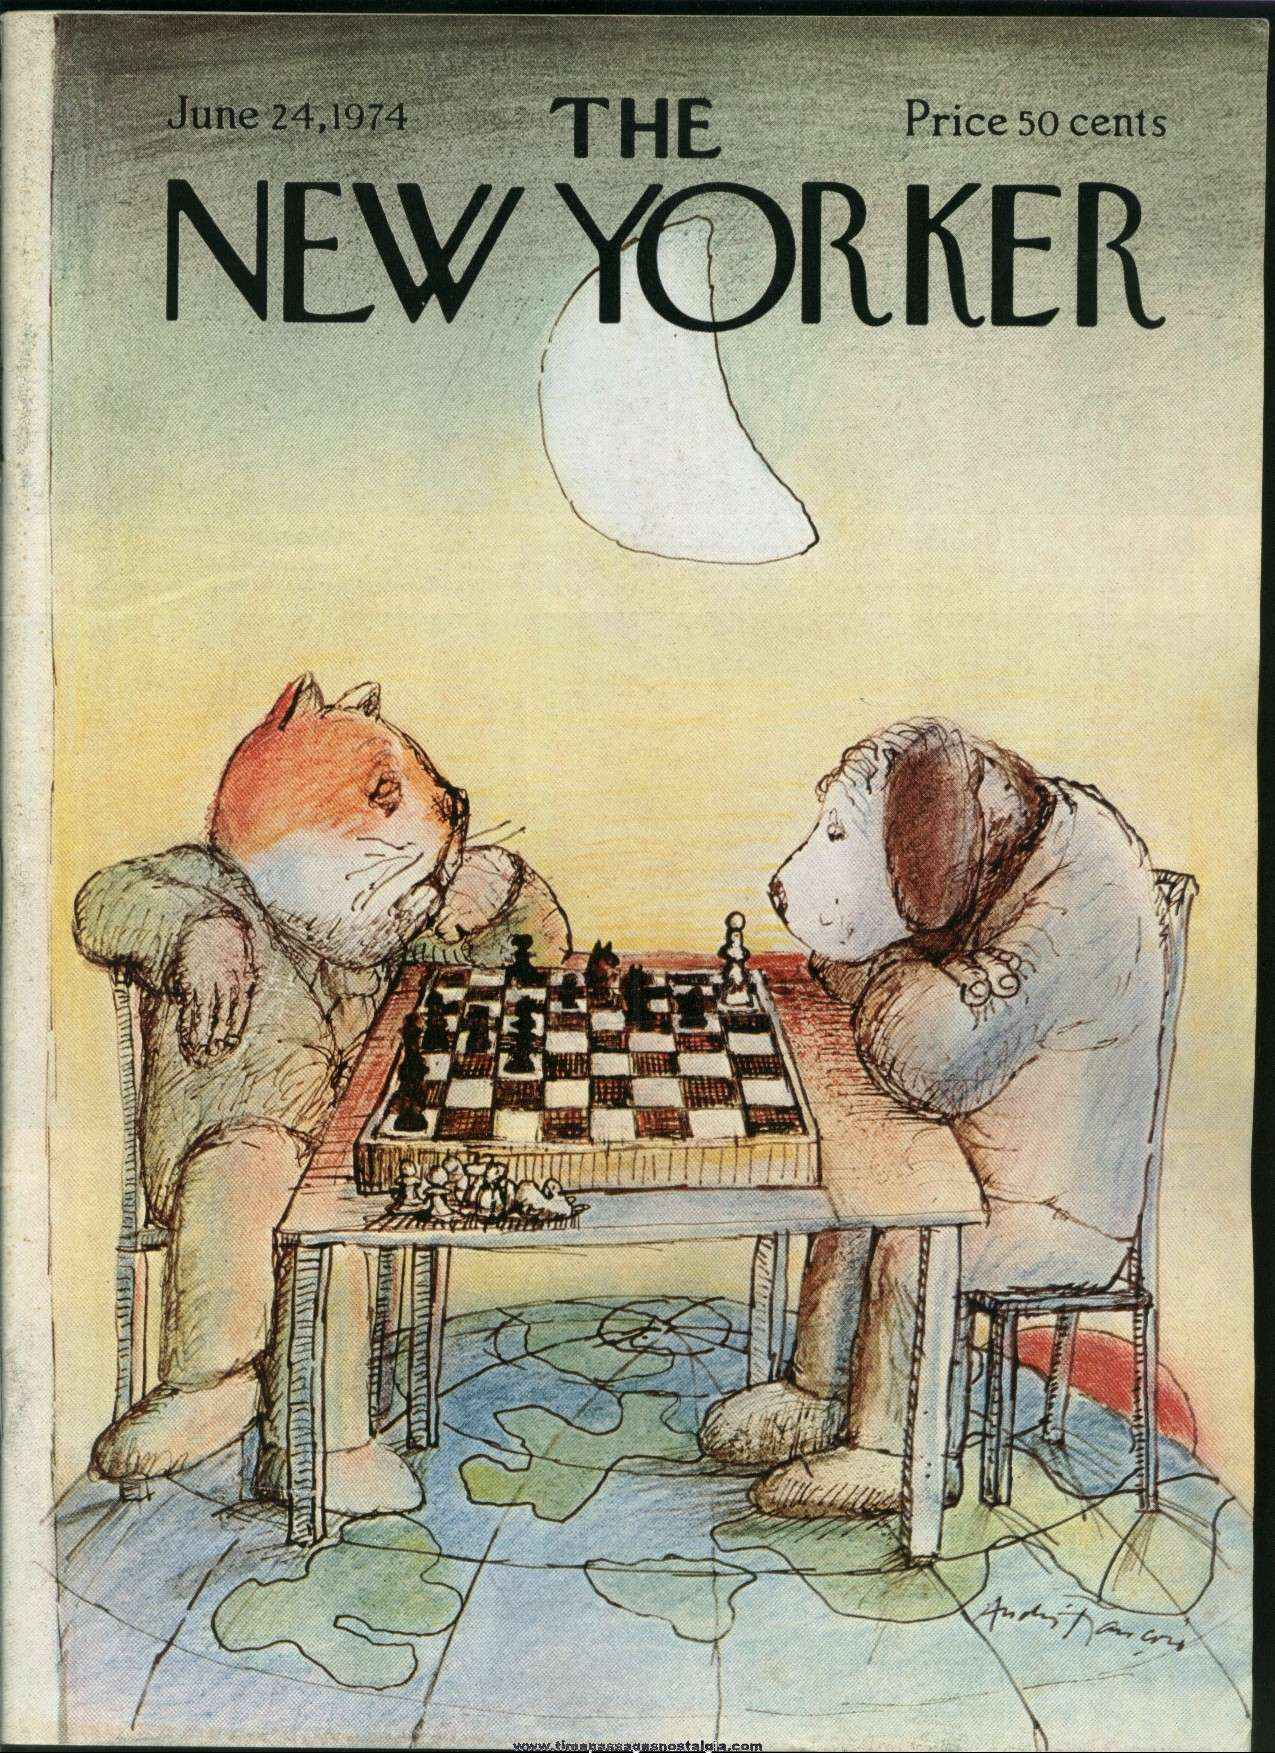 New Yorker Magazine - June 24, 1974 - Cover by Andre Francois